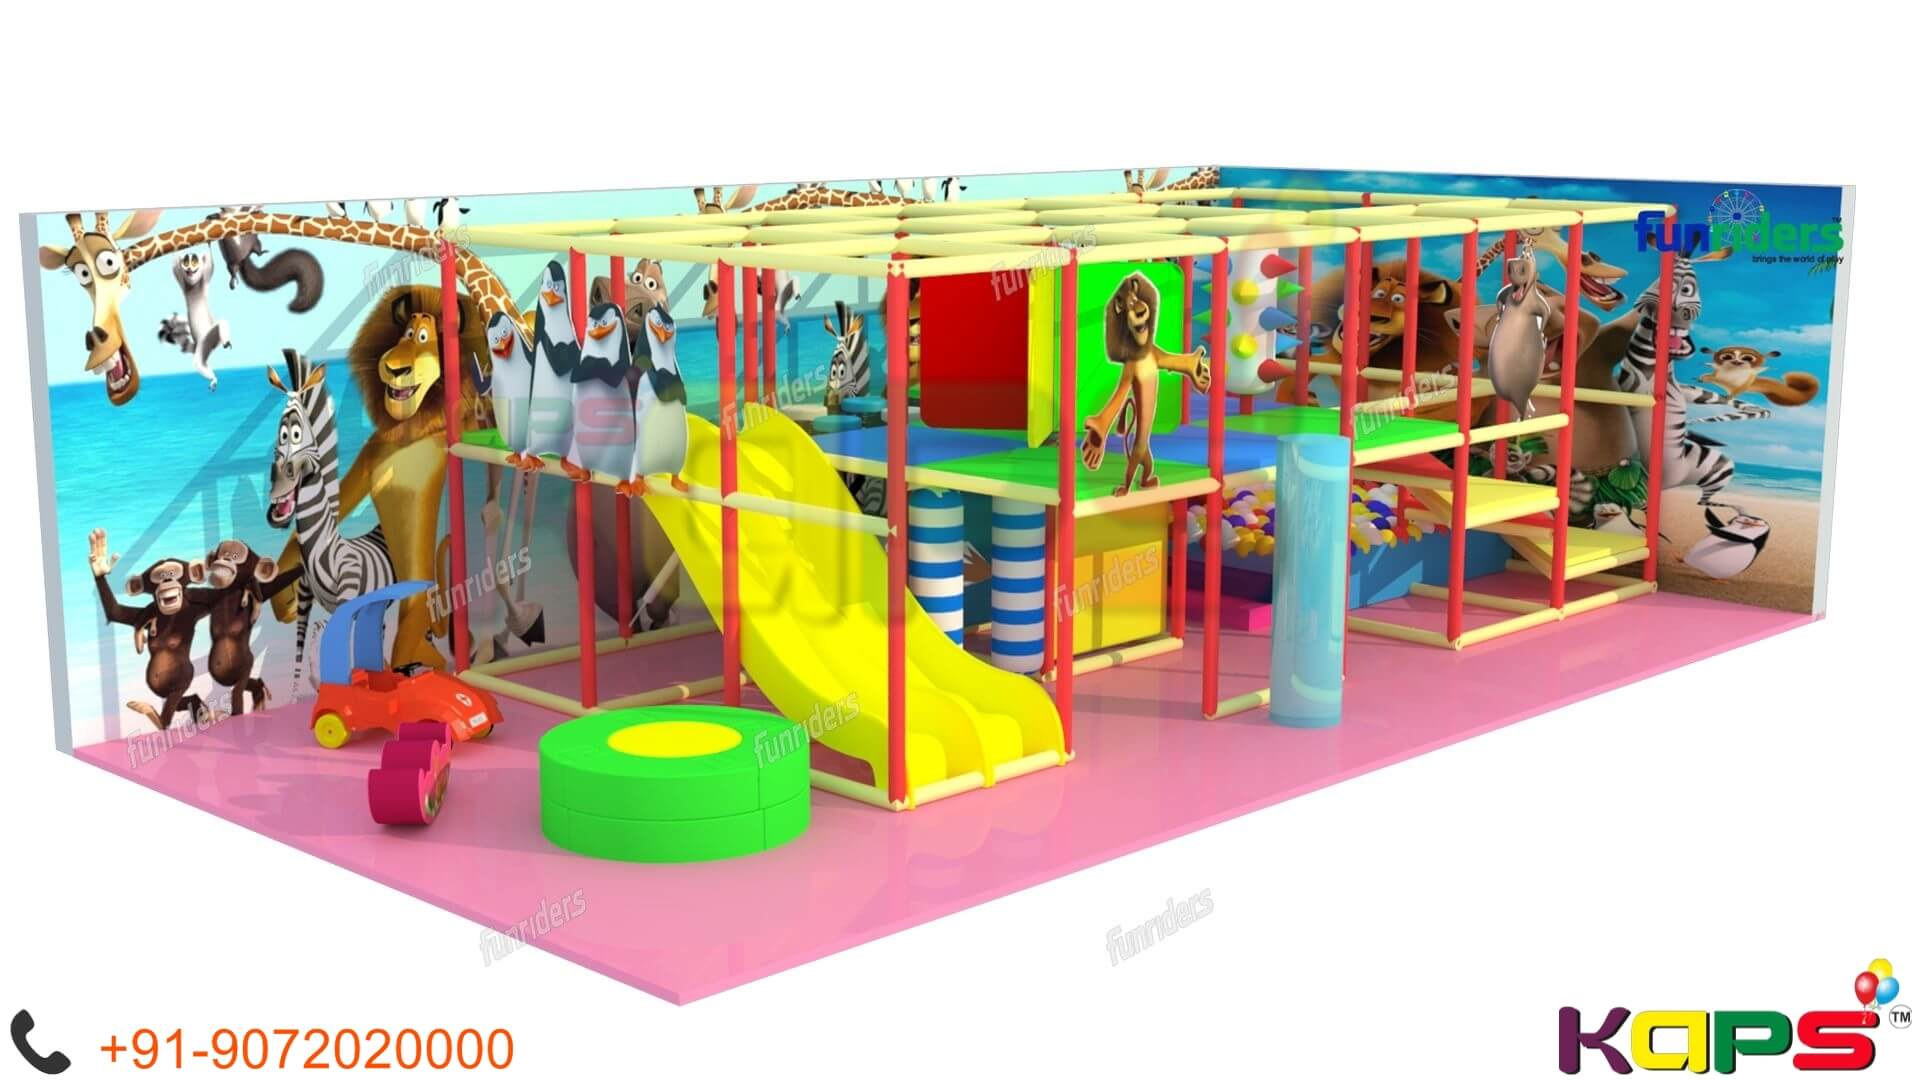 Funriders Indoor Playground Supplier